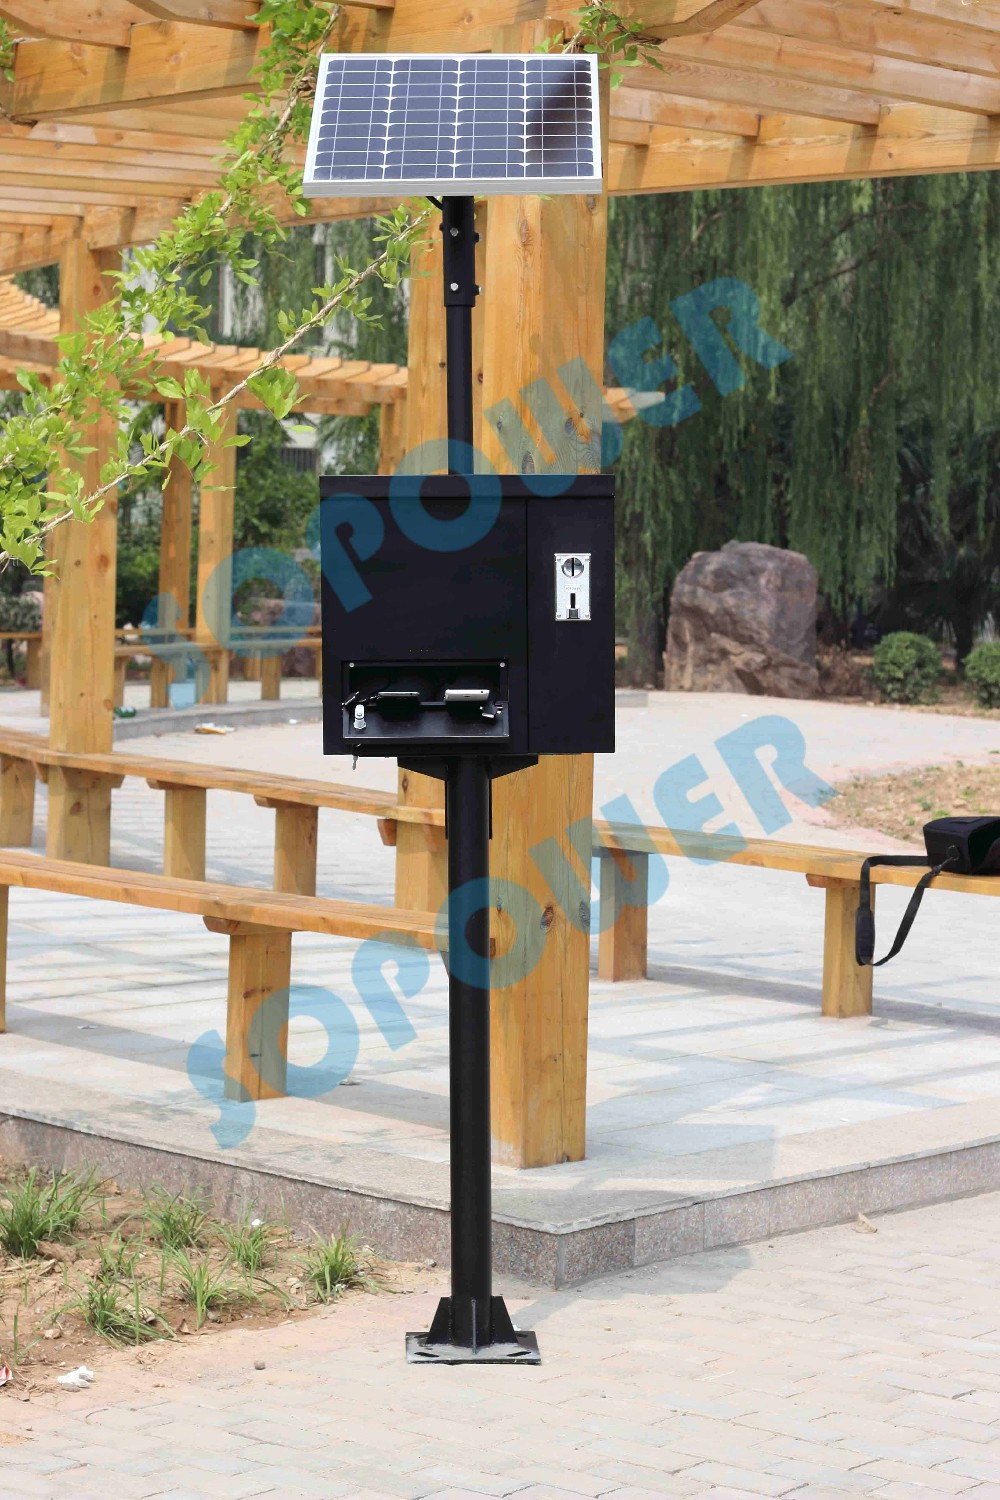 Solar Powered Mobile Phone Charging Kiosk Public Charger